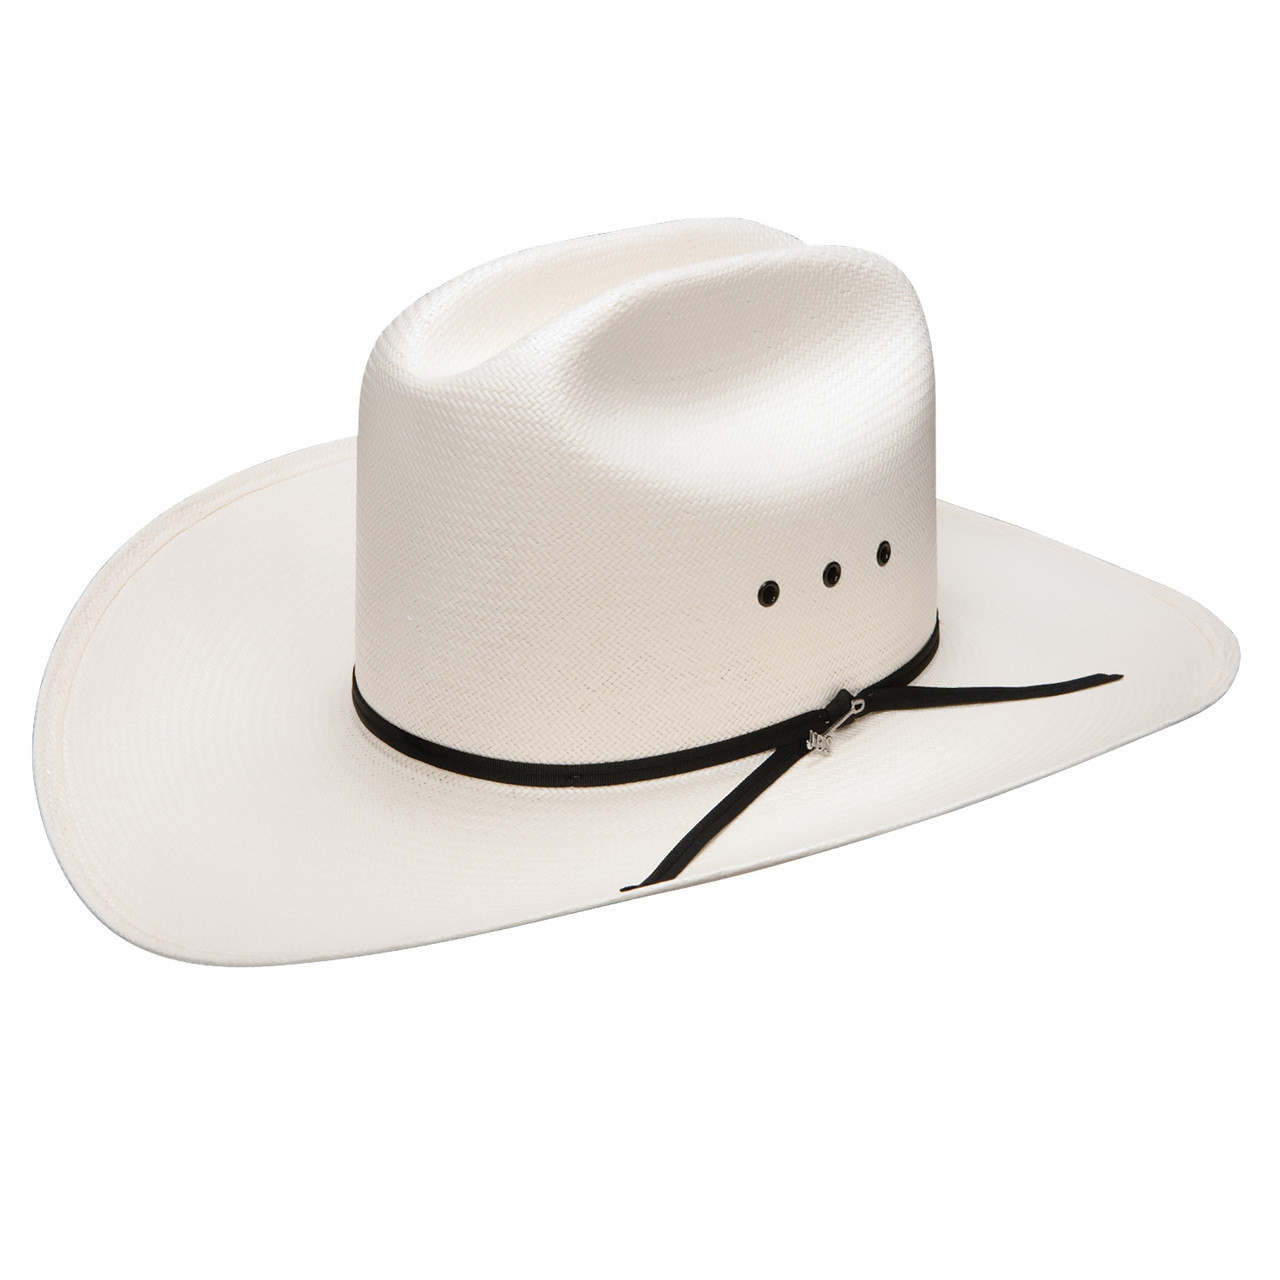 24825d3769885 Stetson Mens Hats - Rancher - 10X Straw Cowboy Hat - Billy s Western ...